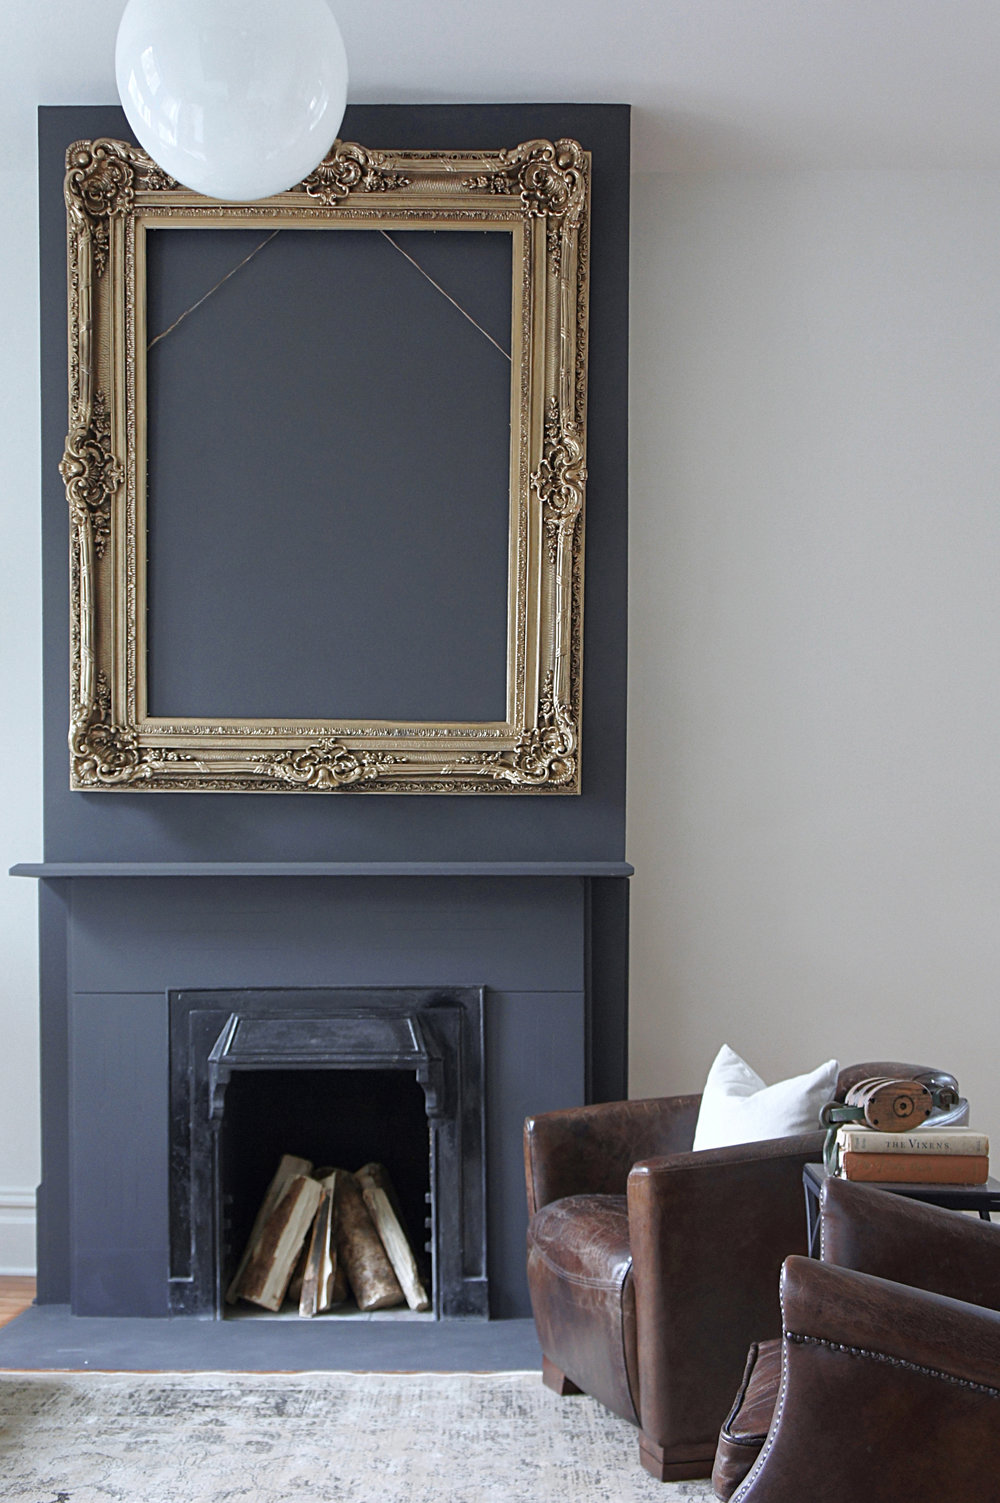 Victorian Fireplace by Kaemingk Design